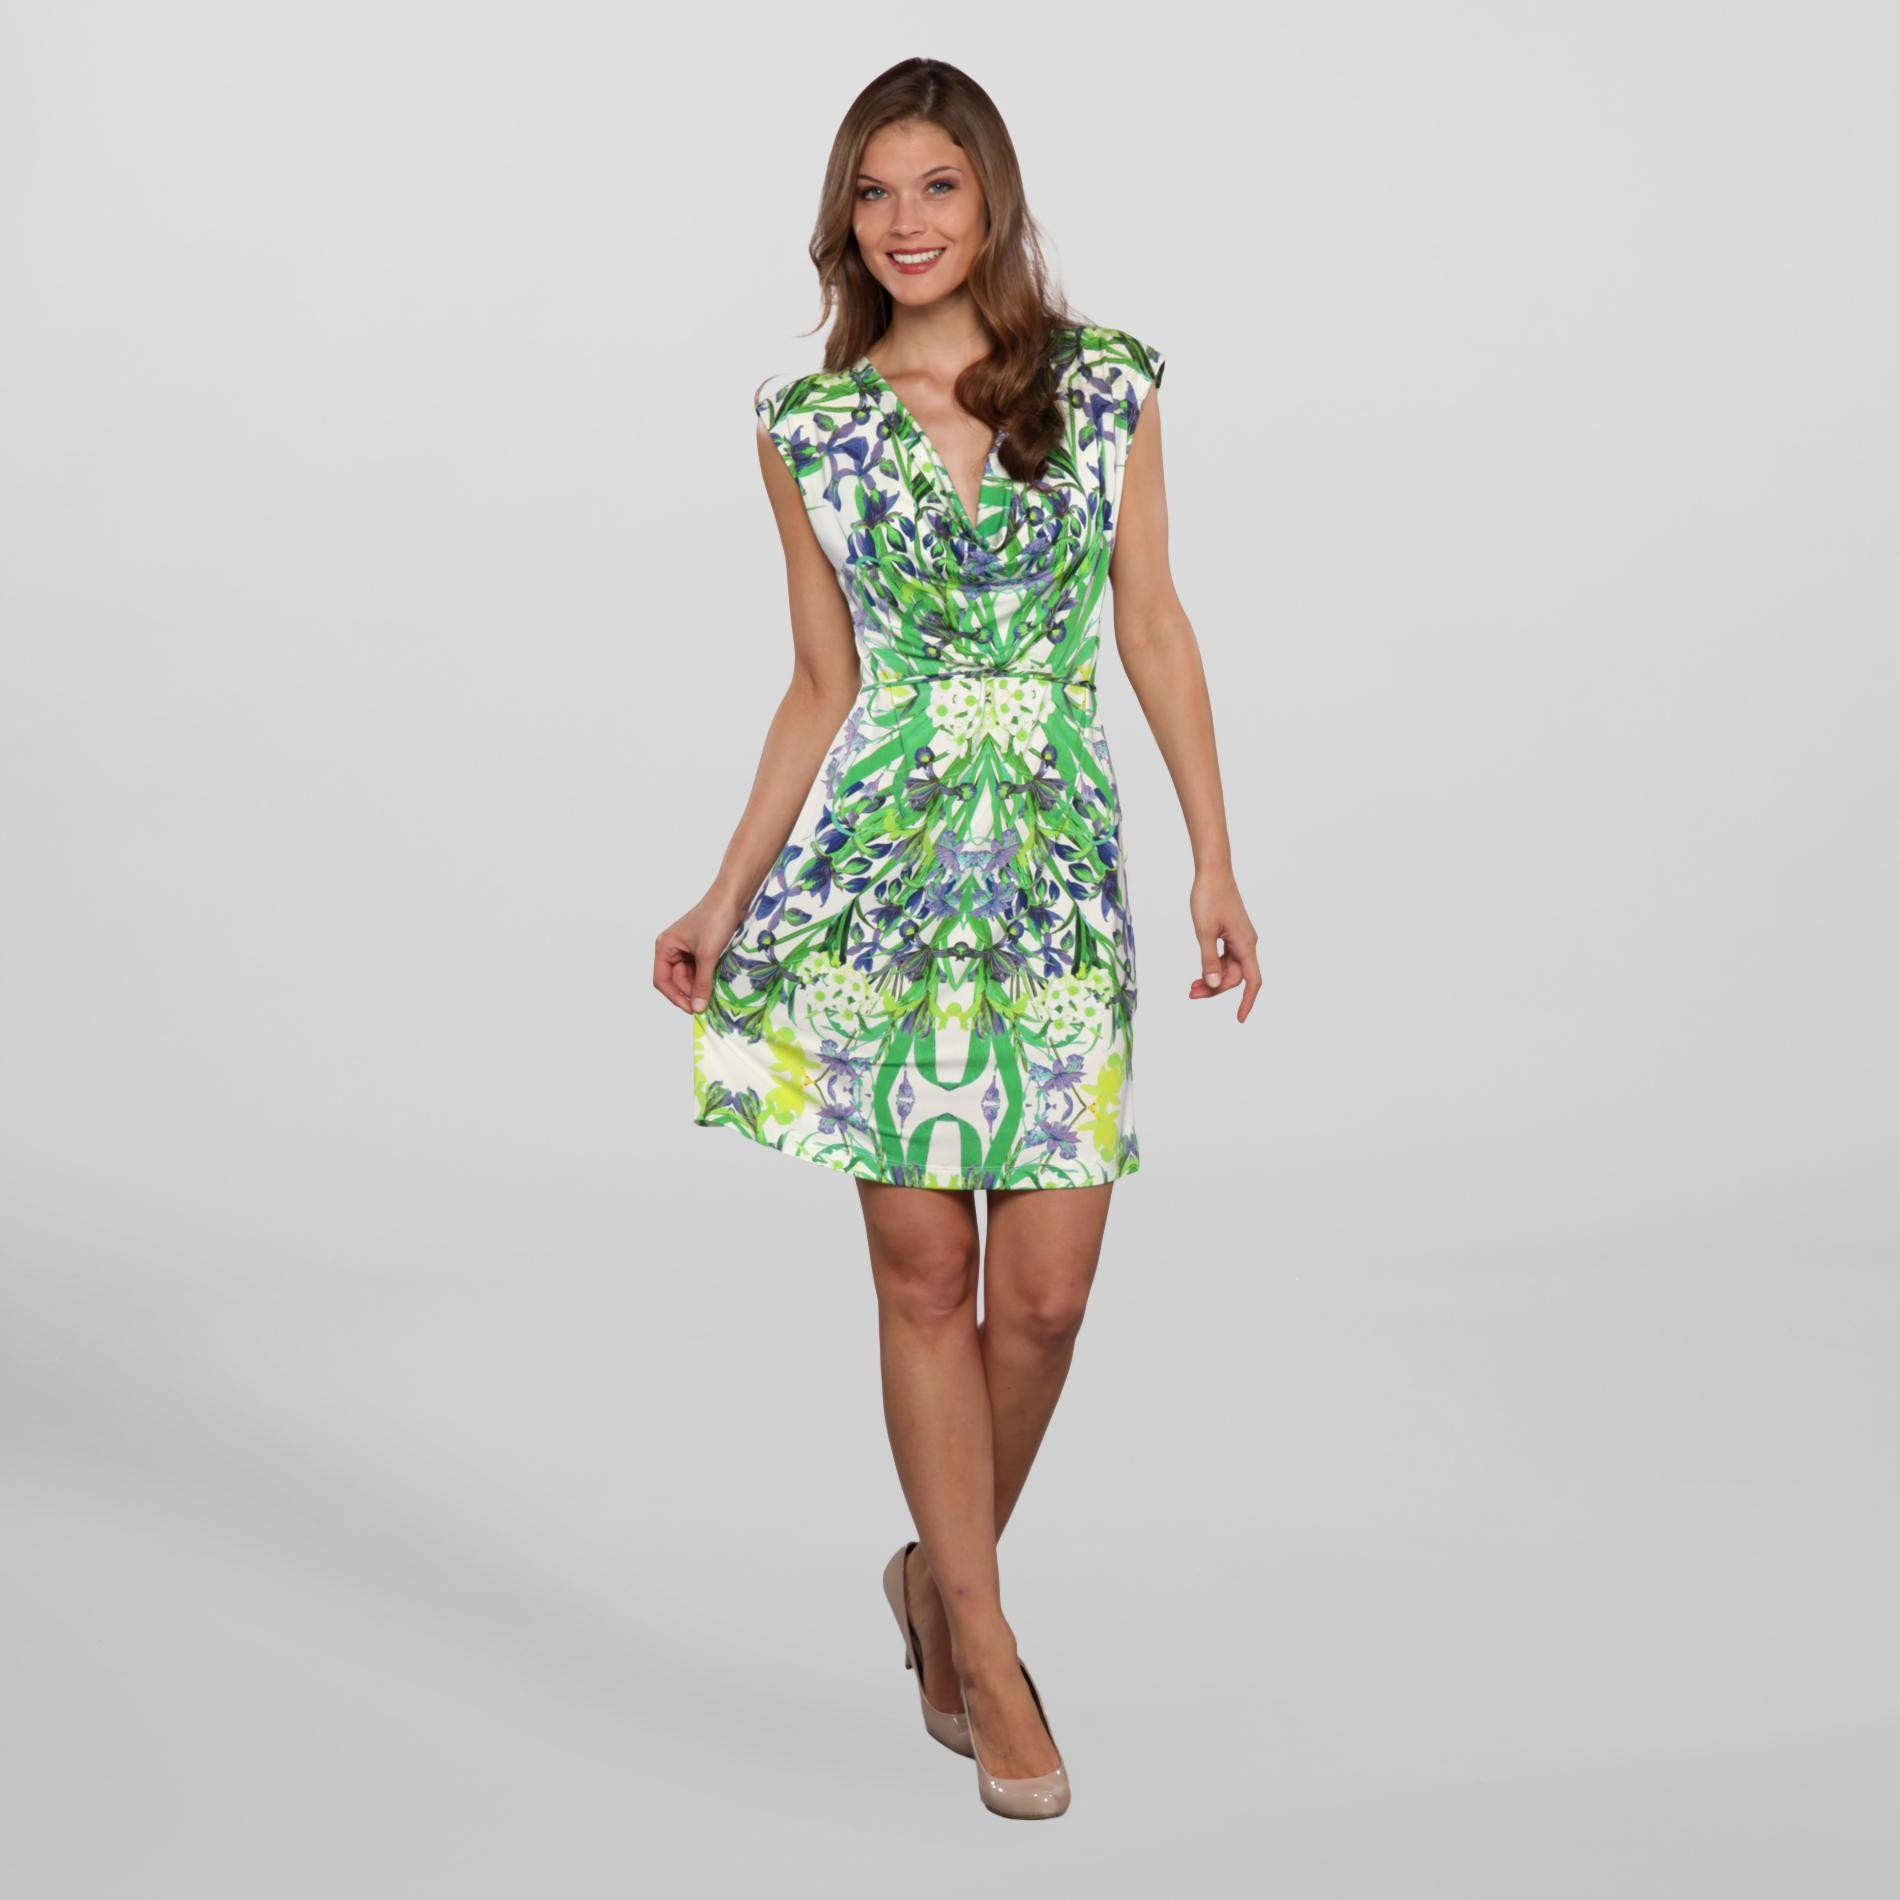 Corey P. Women's Cowl Neck Dress - Floral at Sears.com